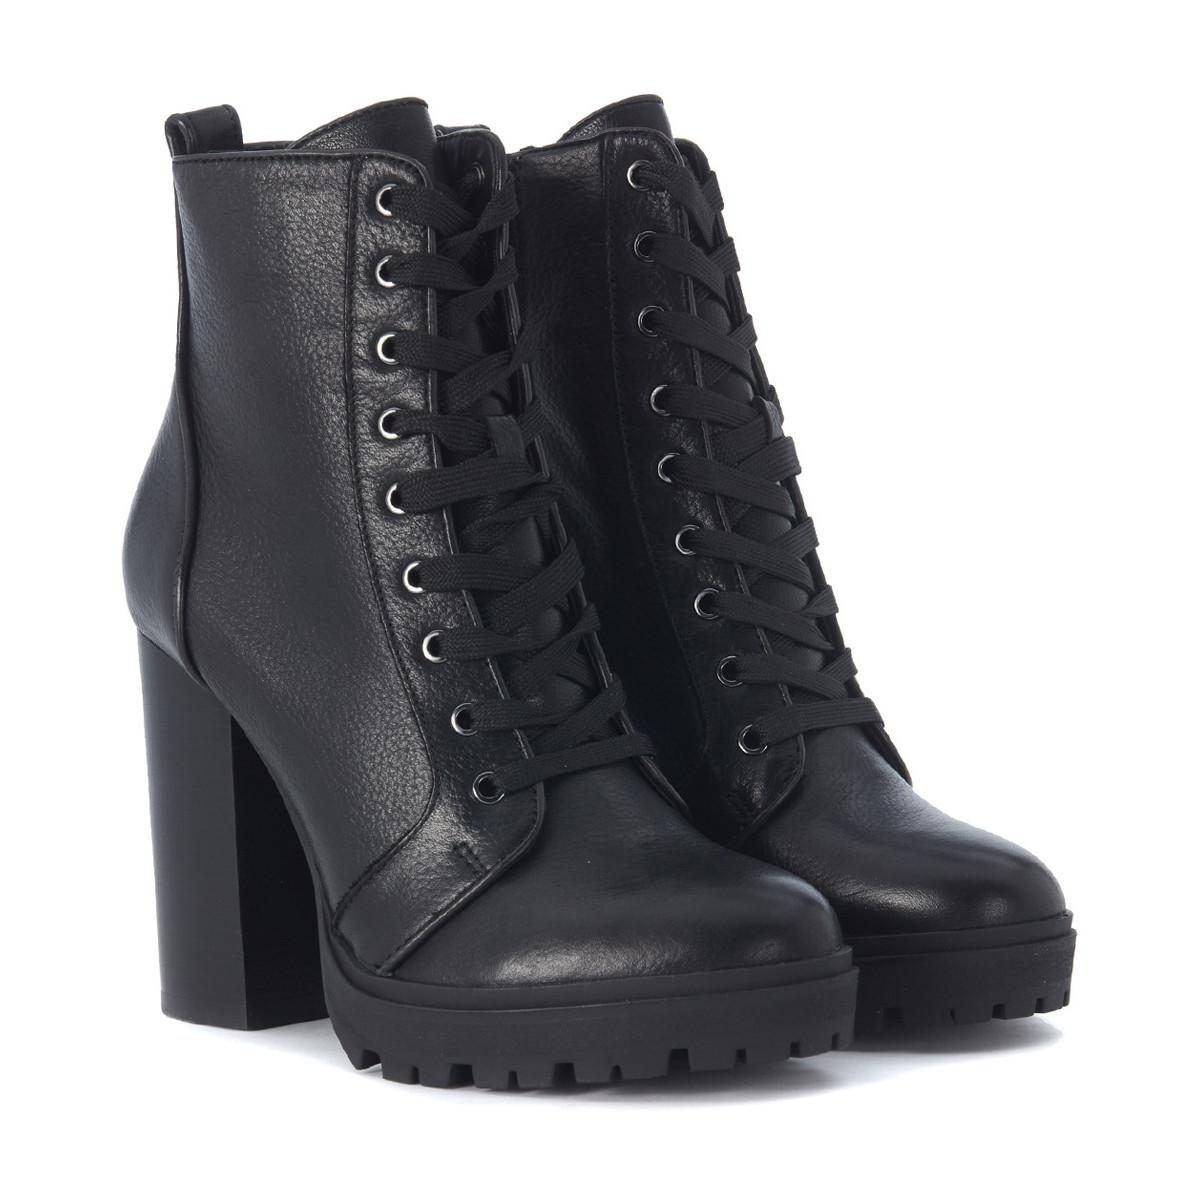 5cc13fe306c Steve Madden Laurie Black Leather Combat Boot Women's Low Ankle ...